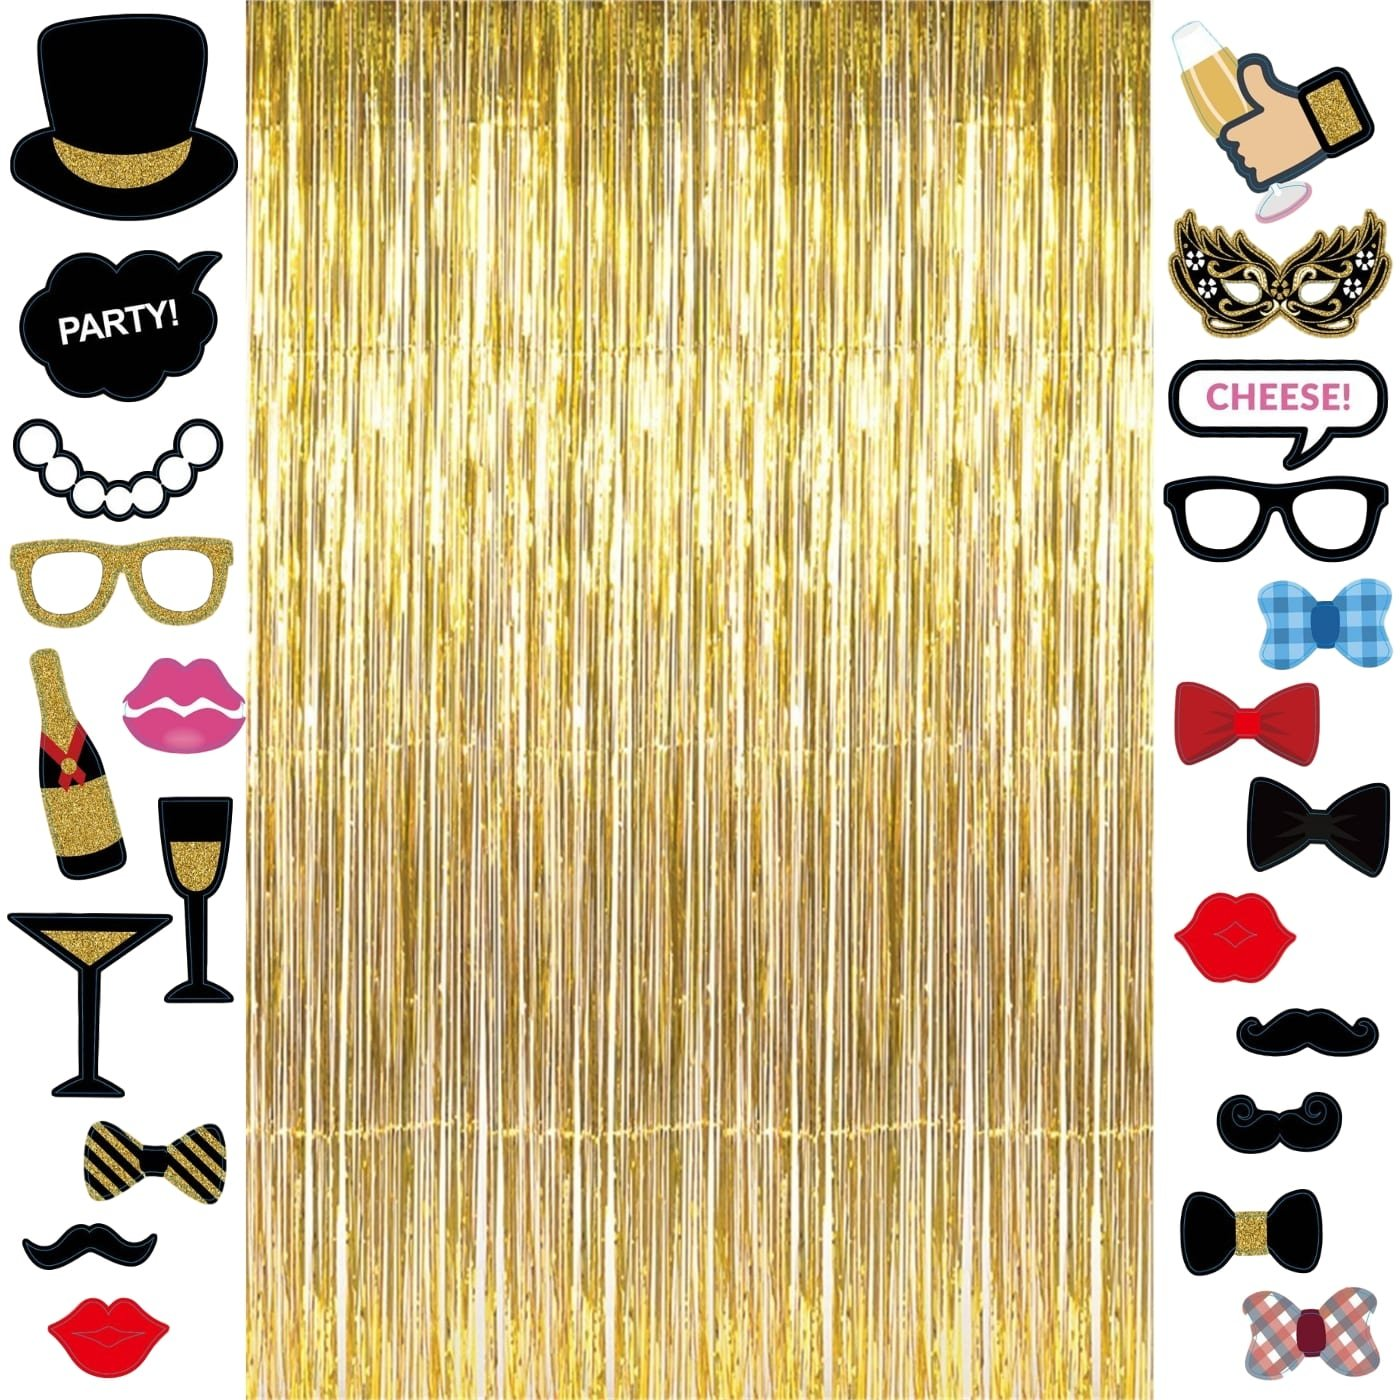 Long Metallic Gold Foil Fringe Tinsel Curtain Backdrop 3.2ft x 9.8ft and 23pcs Black and Gold PhotoBooth Props Wedding Engagement Decorations High School College Graduation Party Favors Supplies by Th Party Supply